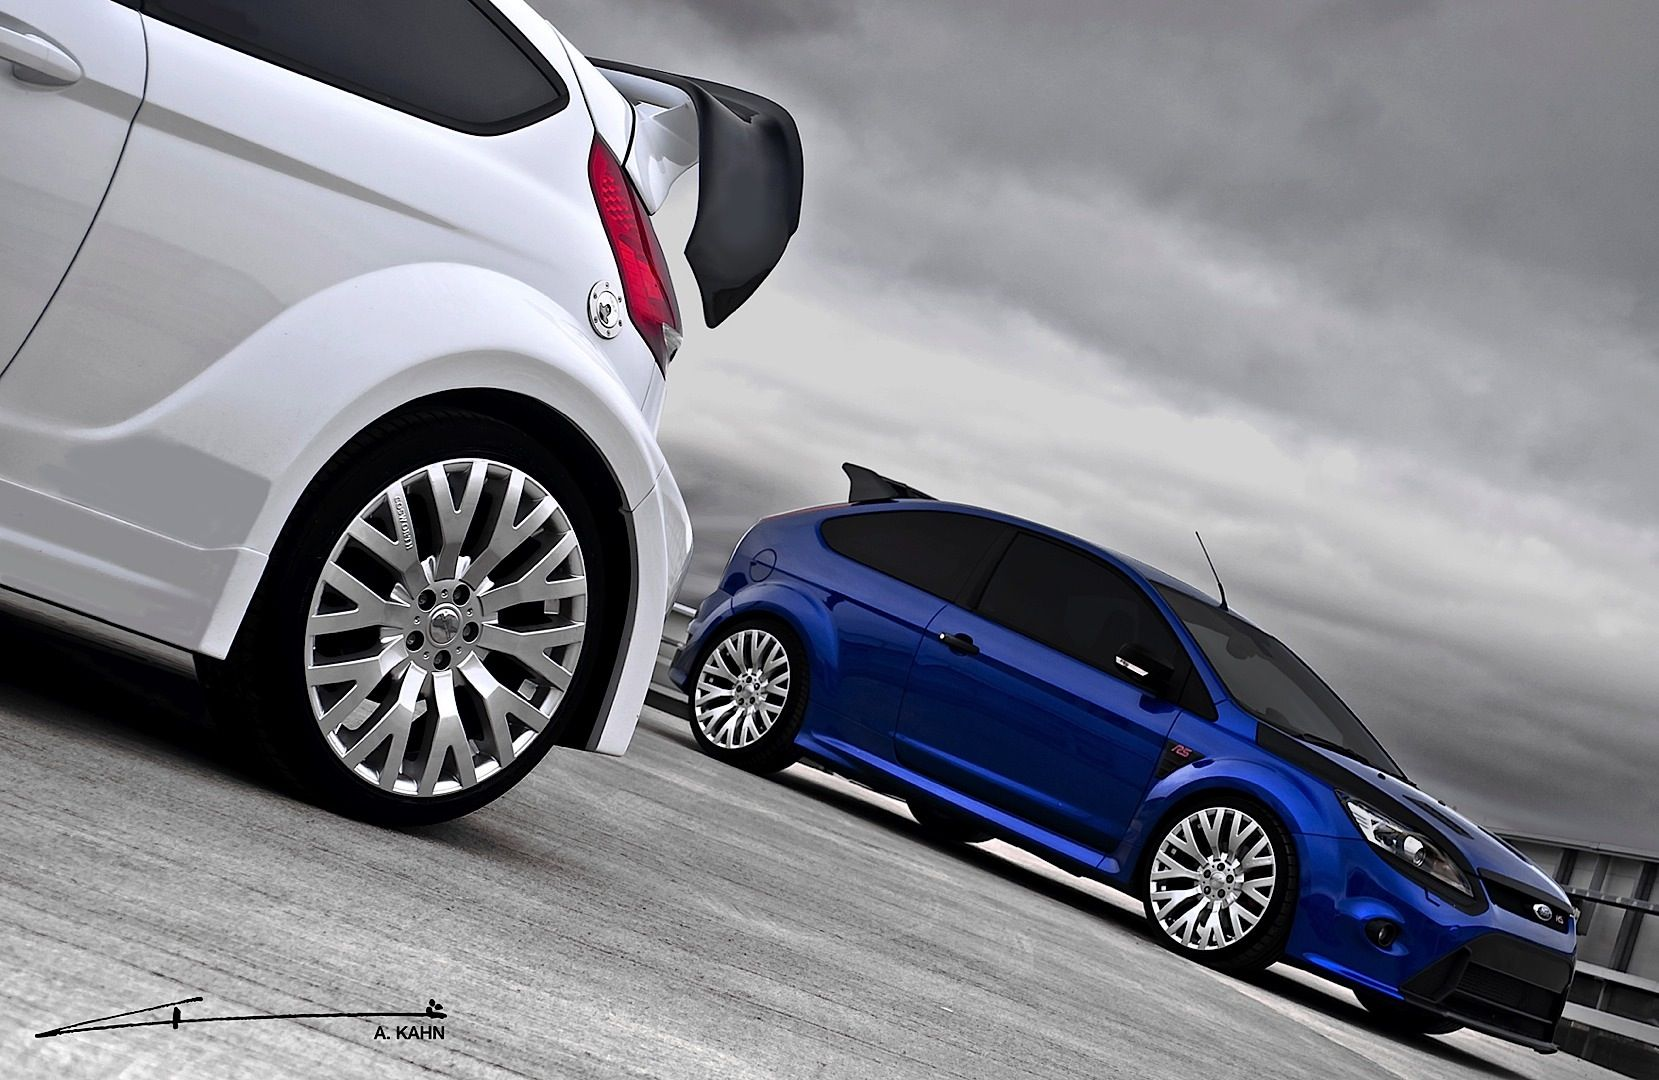 Focus Rs Wheels Google Search Ford Focus Rs Focus Rs Ford Racing